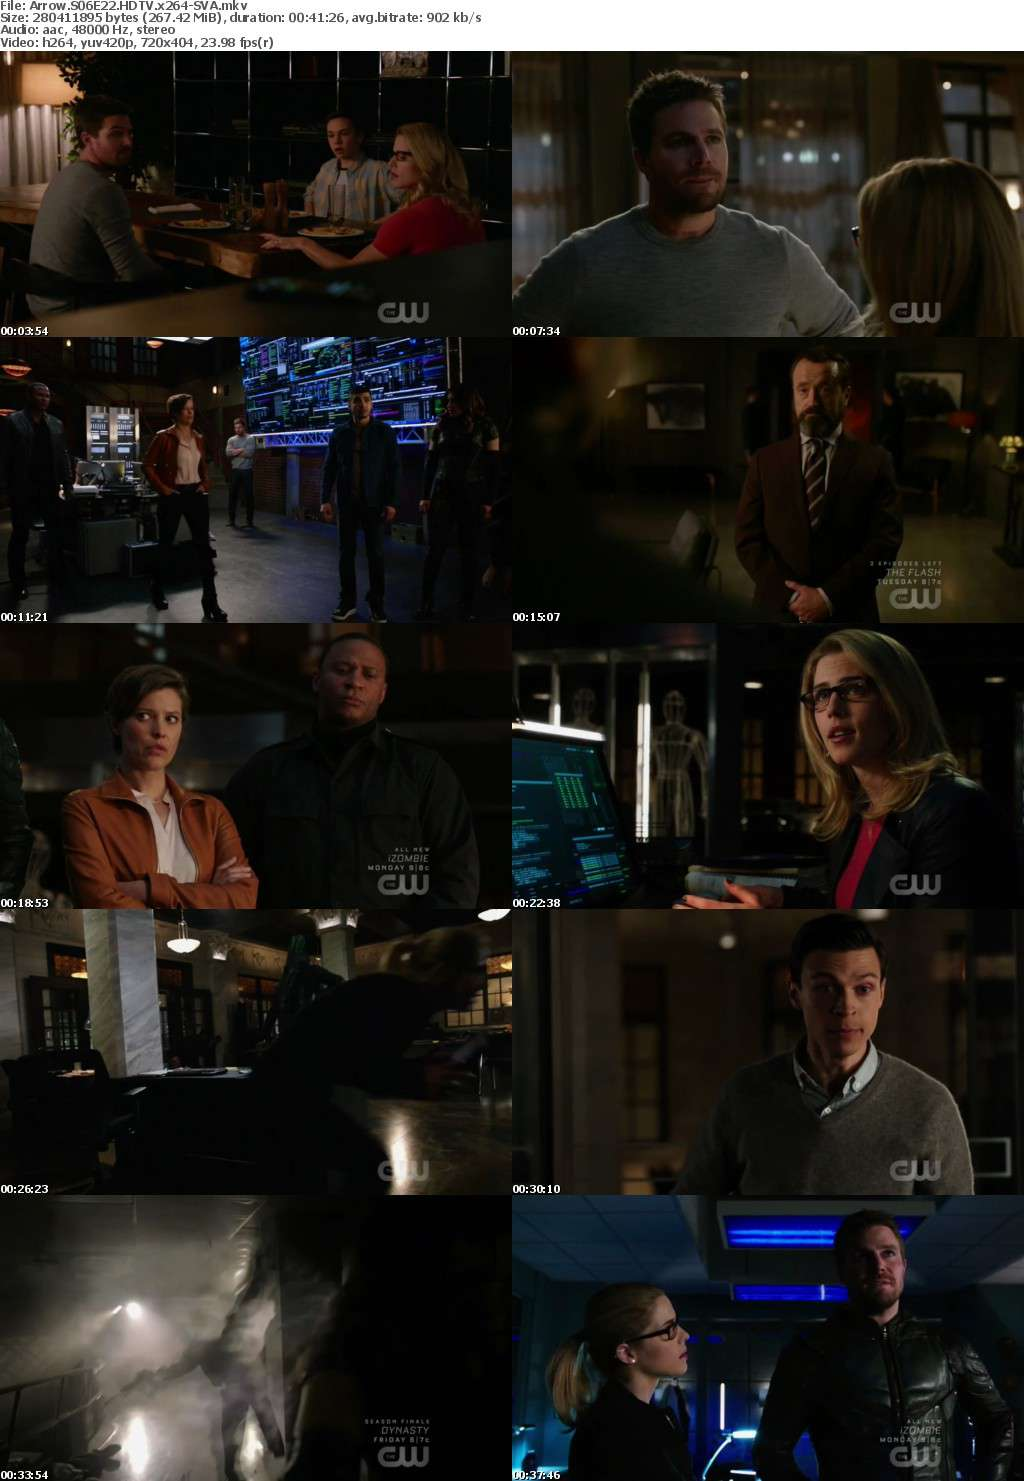 Arrow S06E22 HDTV x264-SVA